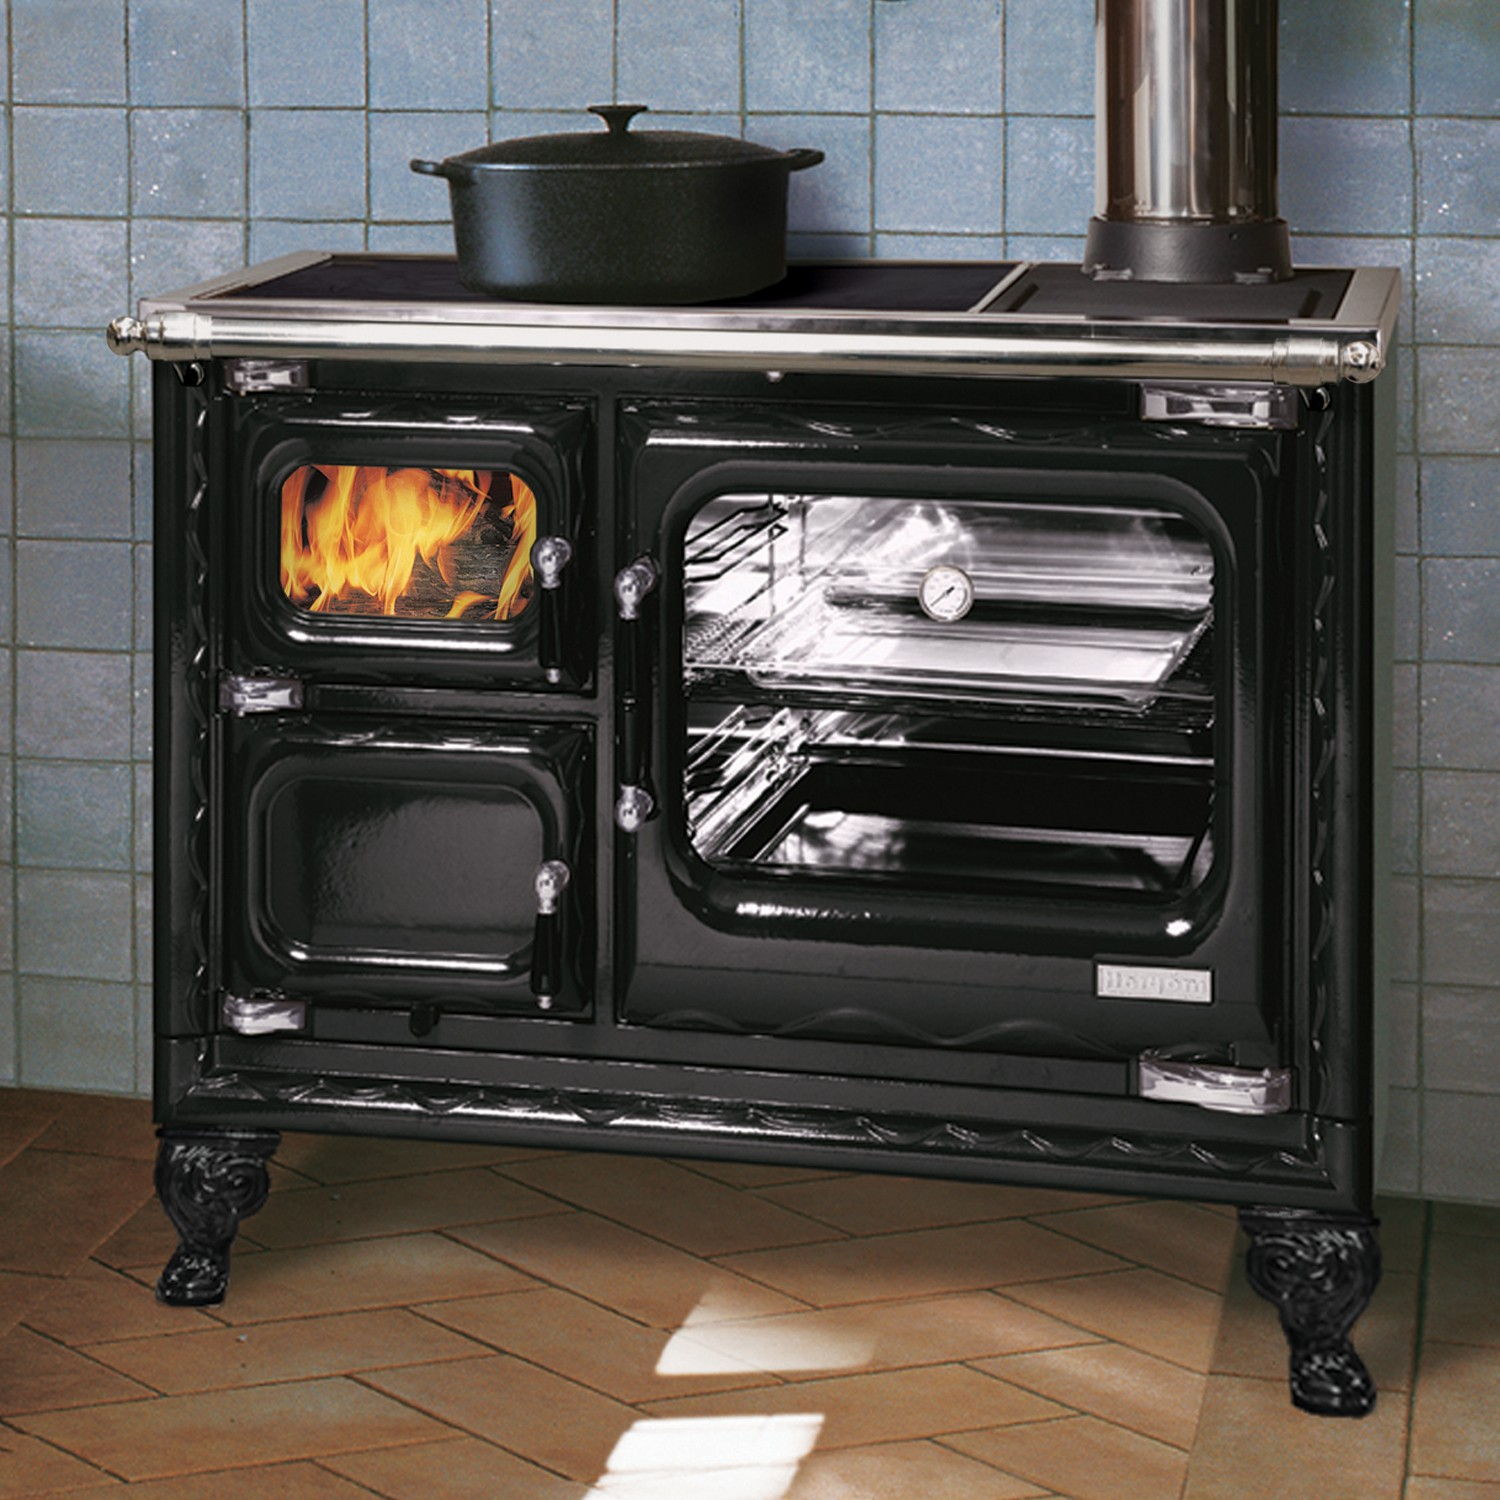 Cozy Cabin Stove & Fireplace Shop - Page 1